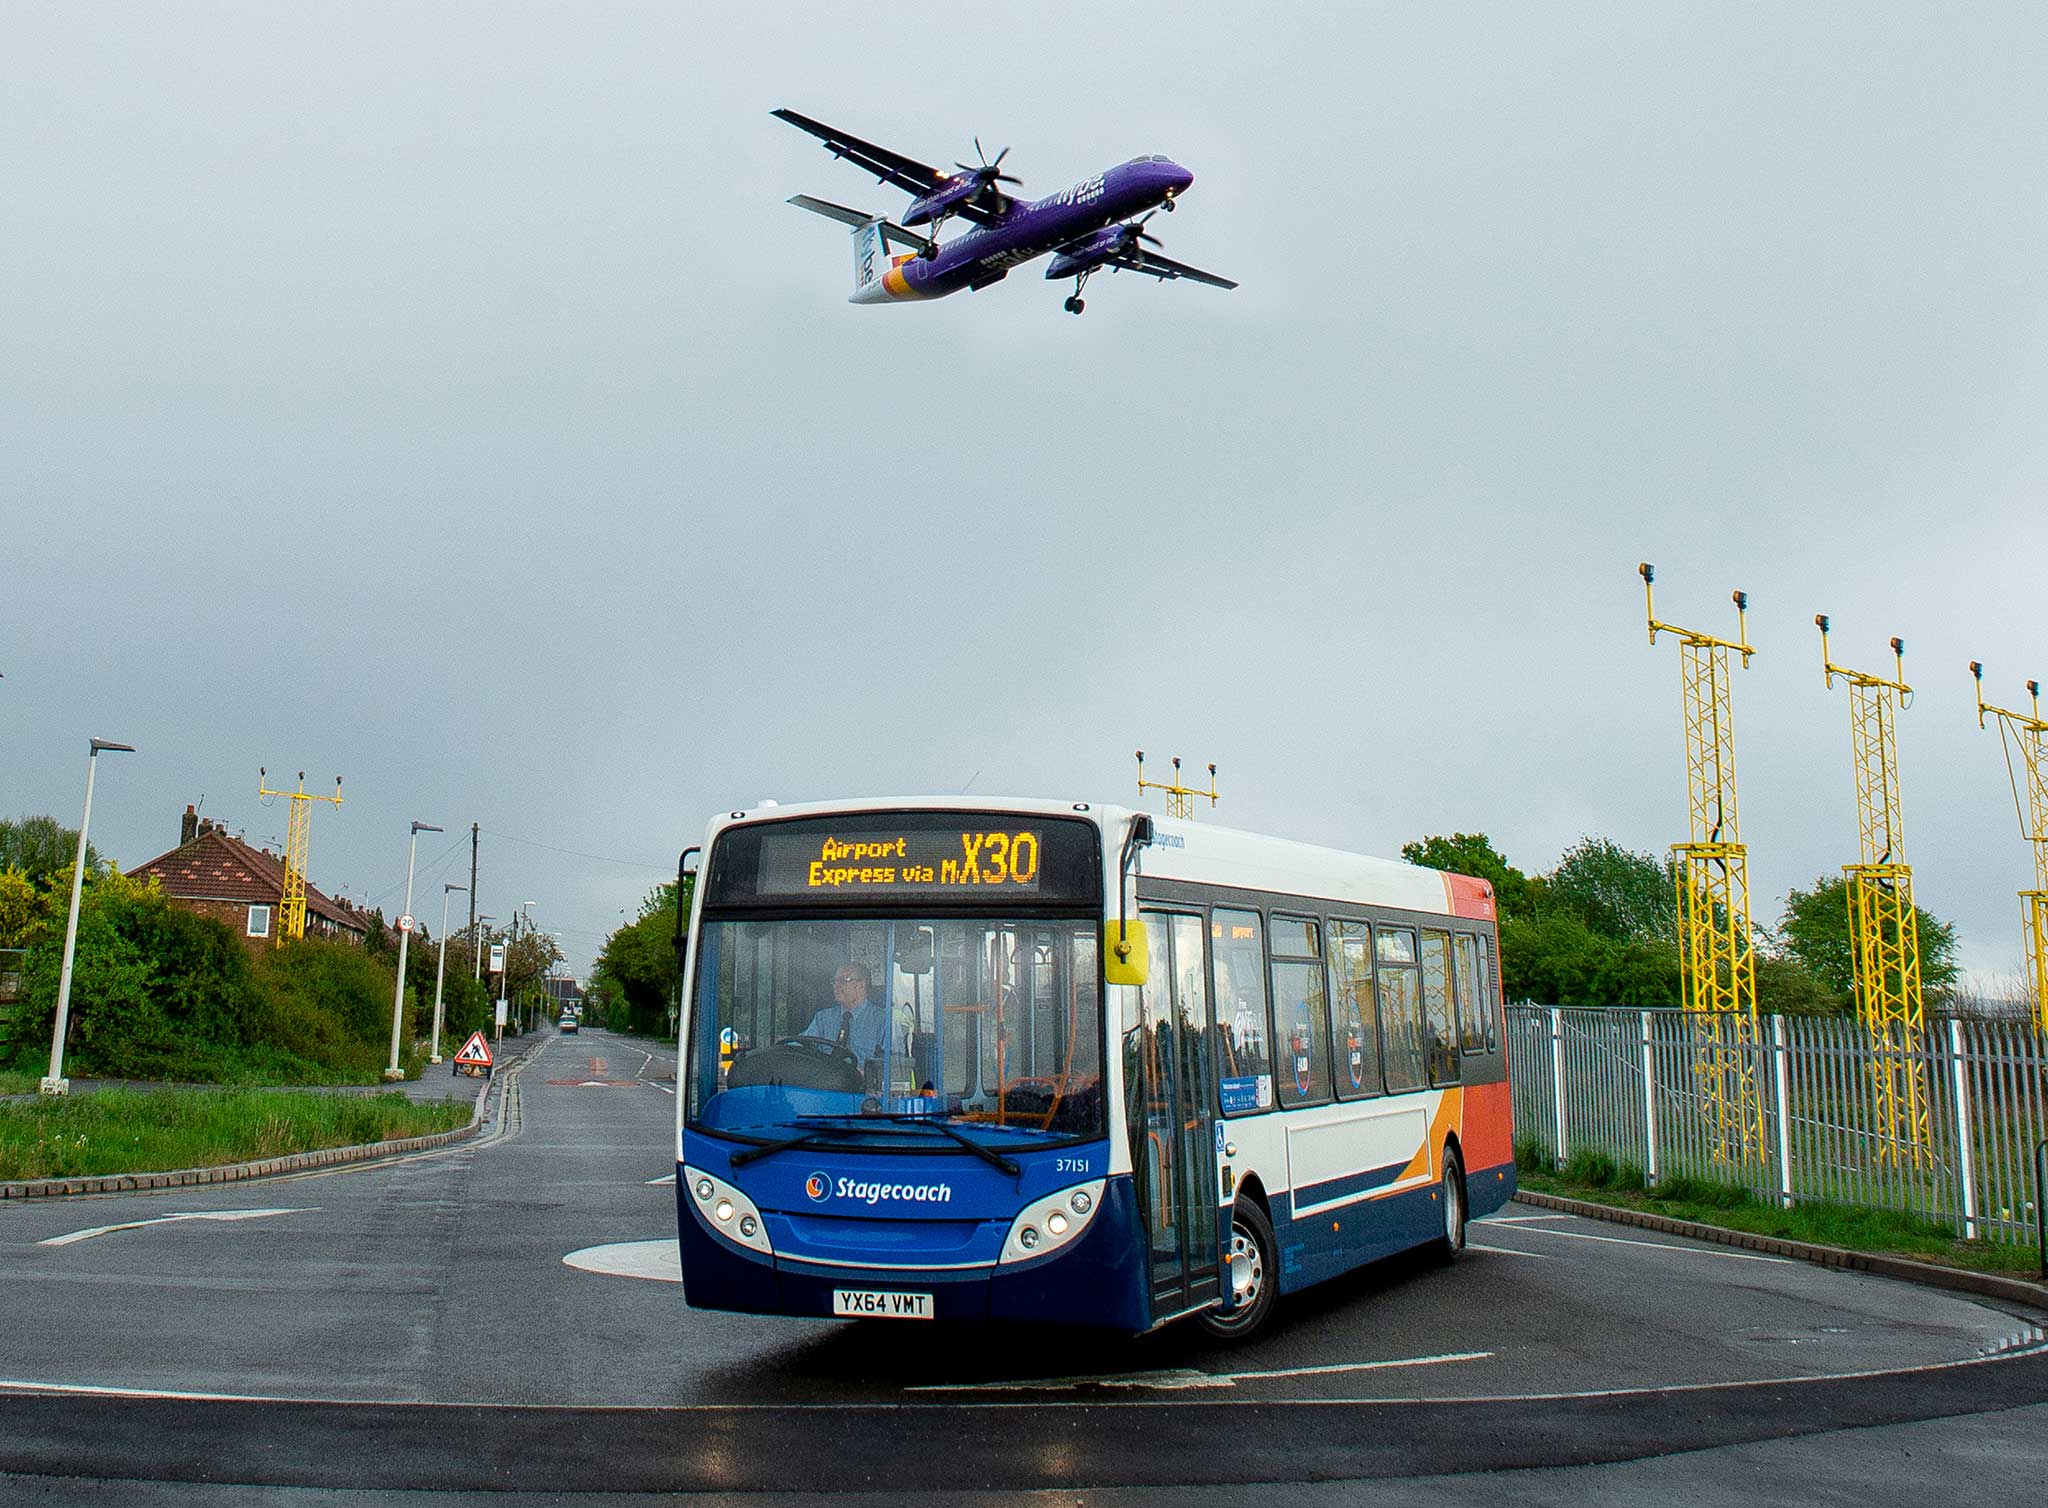 #AYearOfBuses 330: Stockport – Manchester Airport